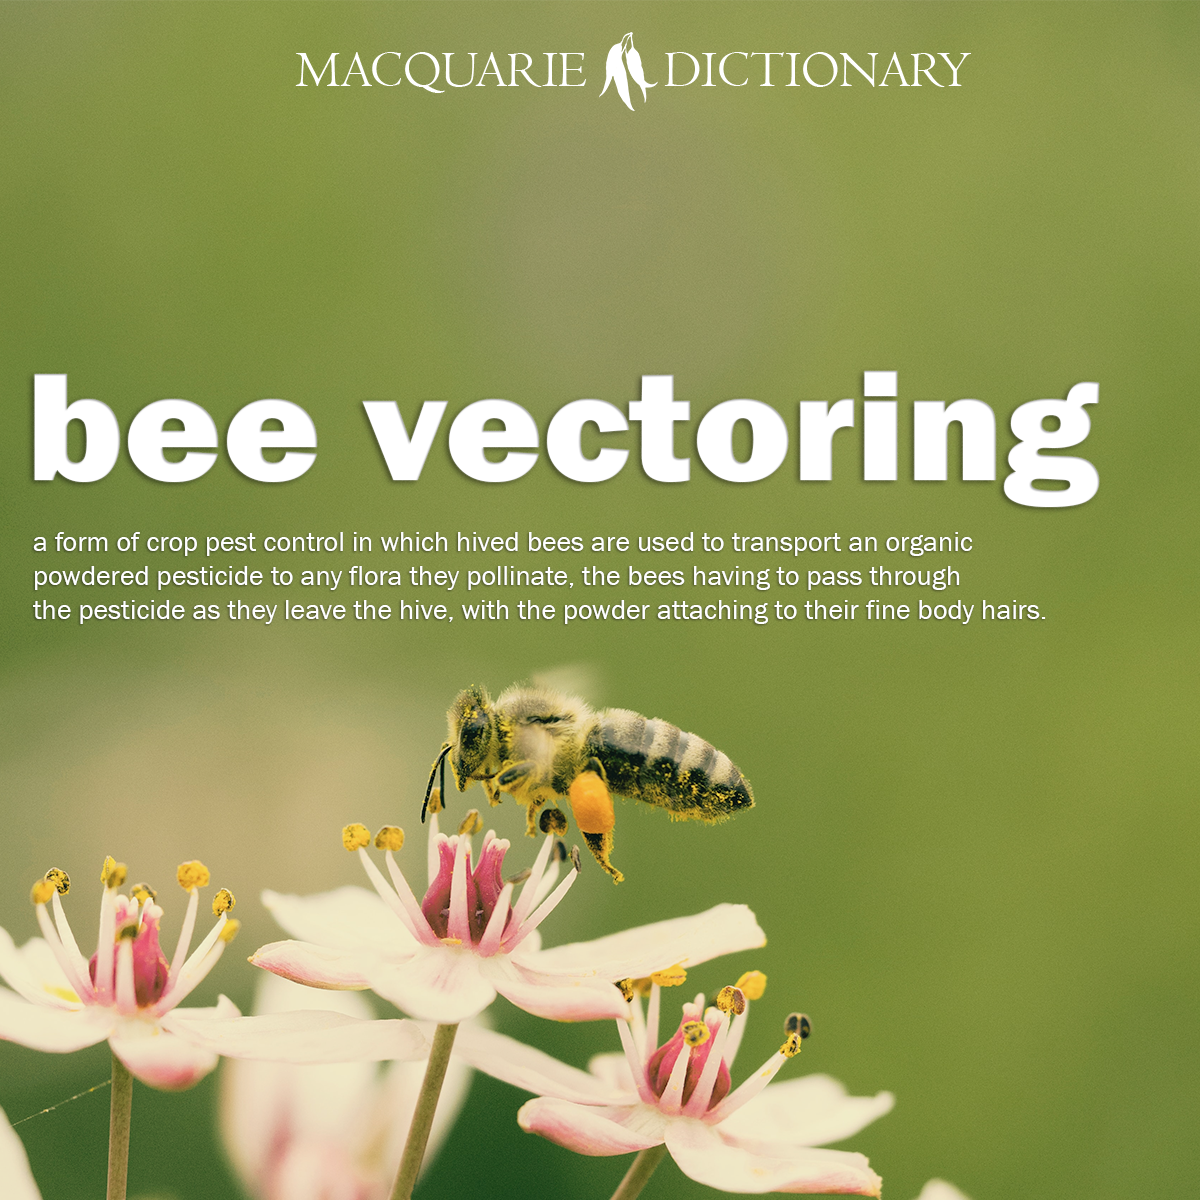 bee vectoring - a form of crop pest control in which hived bees are used to transport an organic powdered pesticide to any flora they pollinate, the bees having to pass through the pesticide as they leave the hive, with the powder attaching to their fine body hairs.